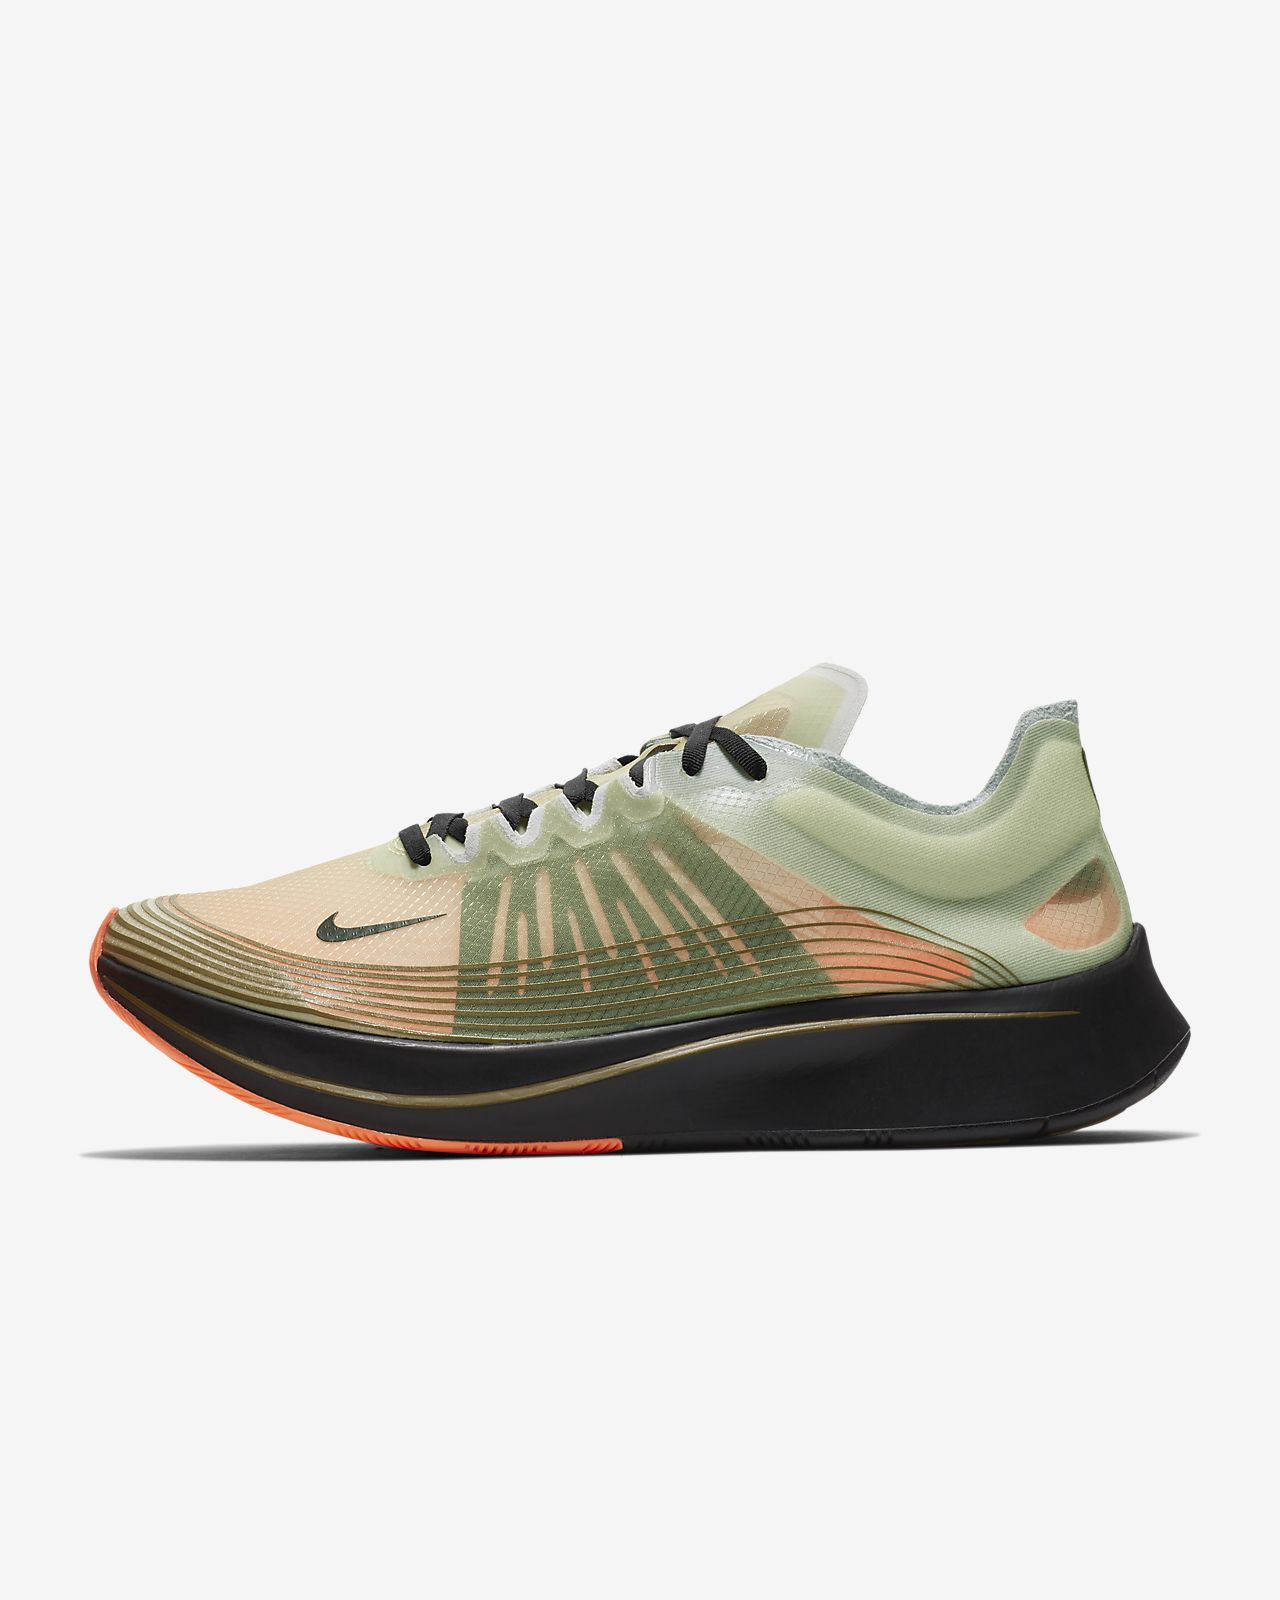 82c948a8bbc Nike Zoom Fly SP Running Shoe. Nike.com PT